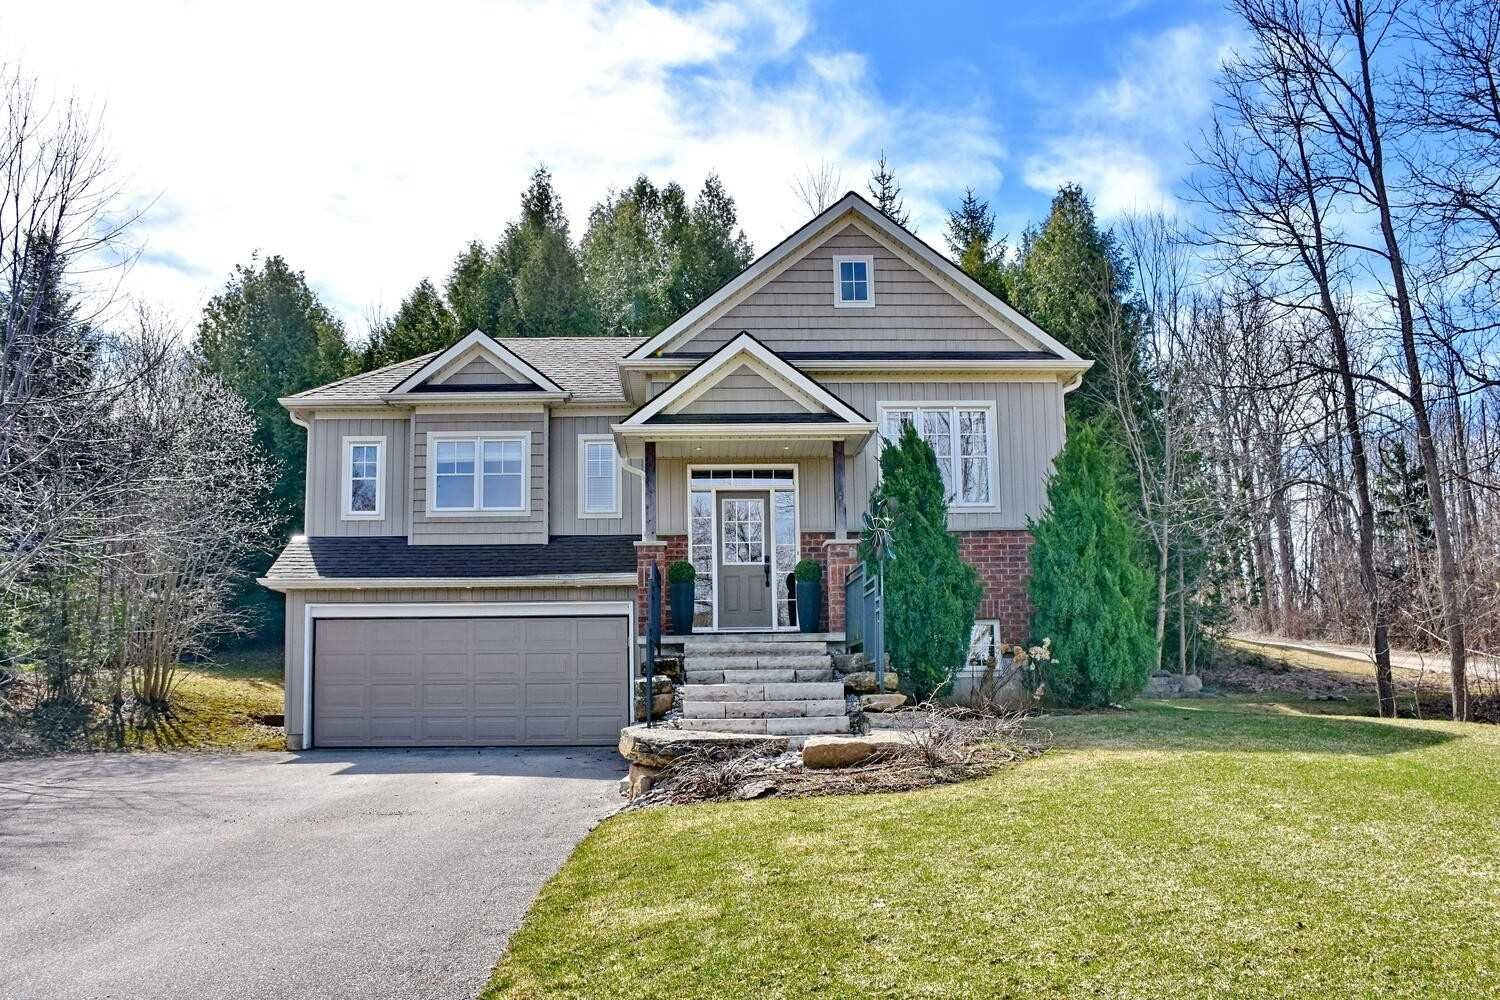 Main Photo: 102 Faircrest Lane in Blue Mountains: Blue Mountain Resort Area House (Bungalow-Raised) for sale : MLS®# X5174539